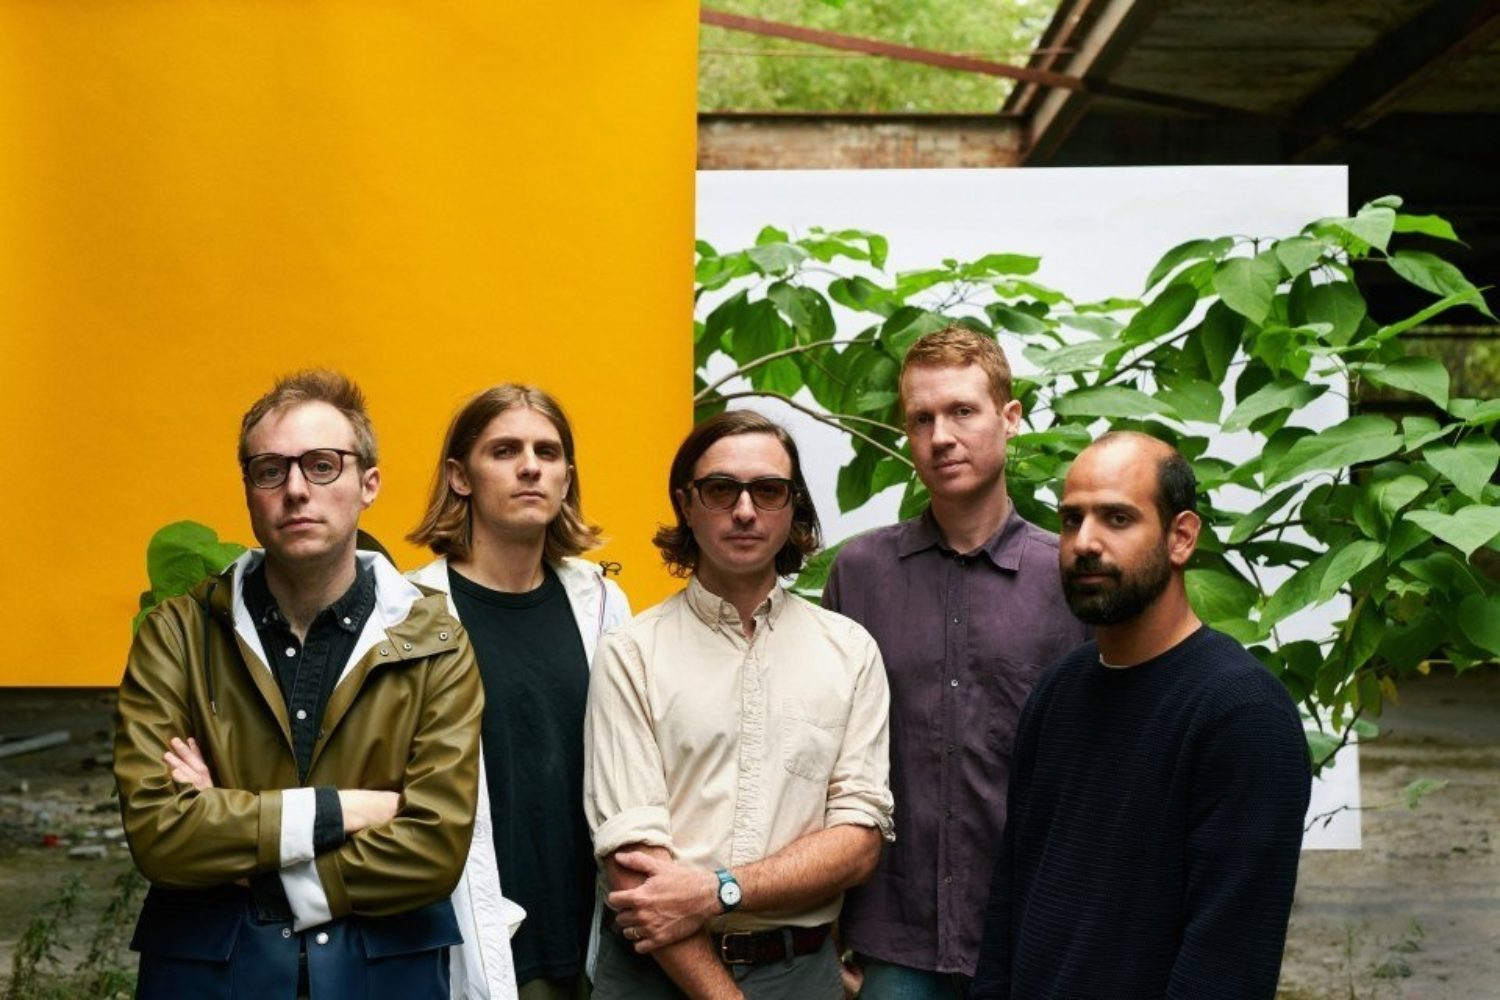 Real Estate announce new album 'The Main Thing'